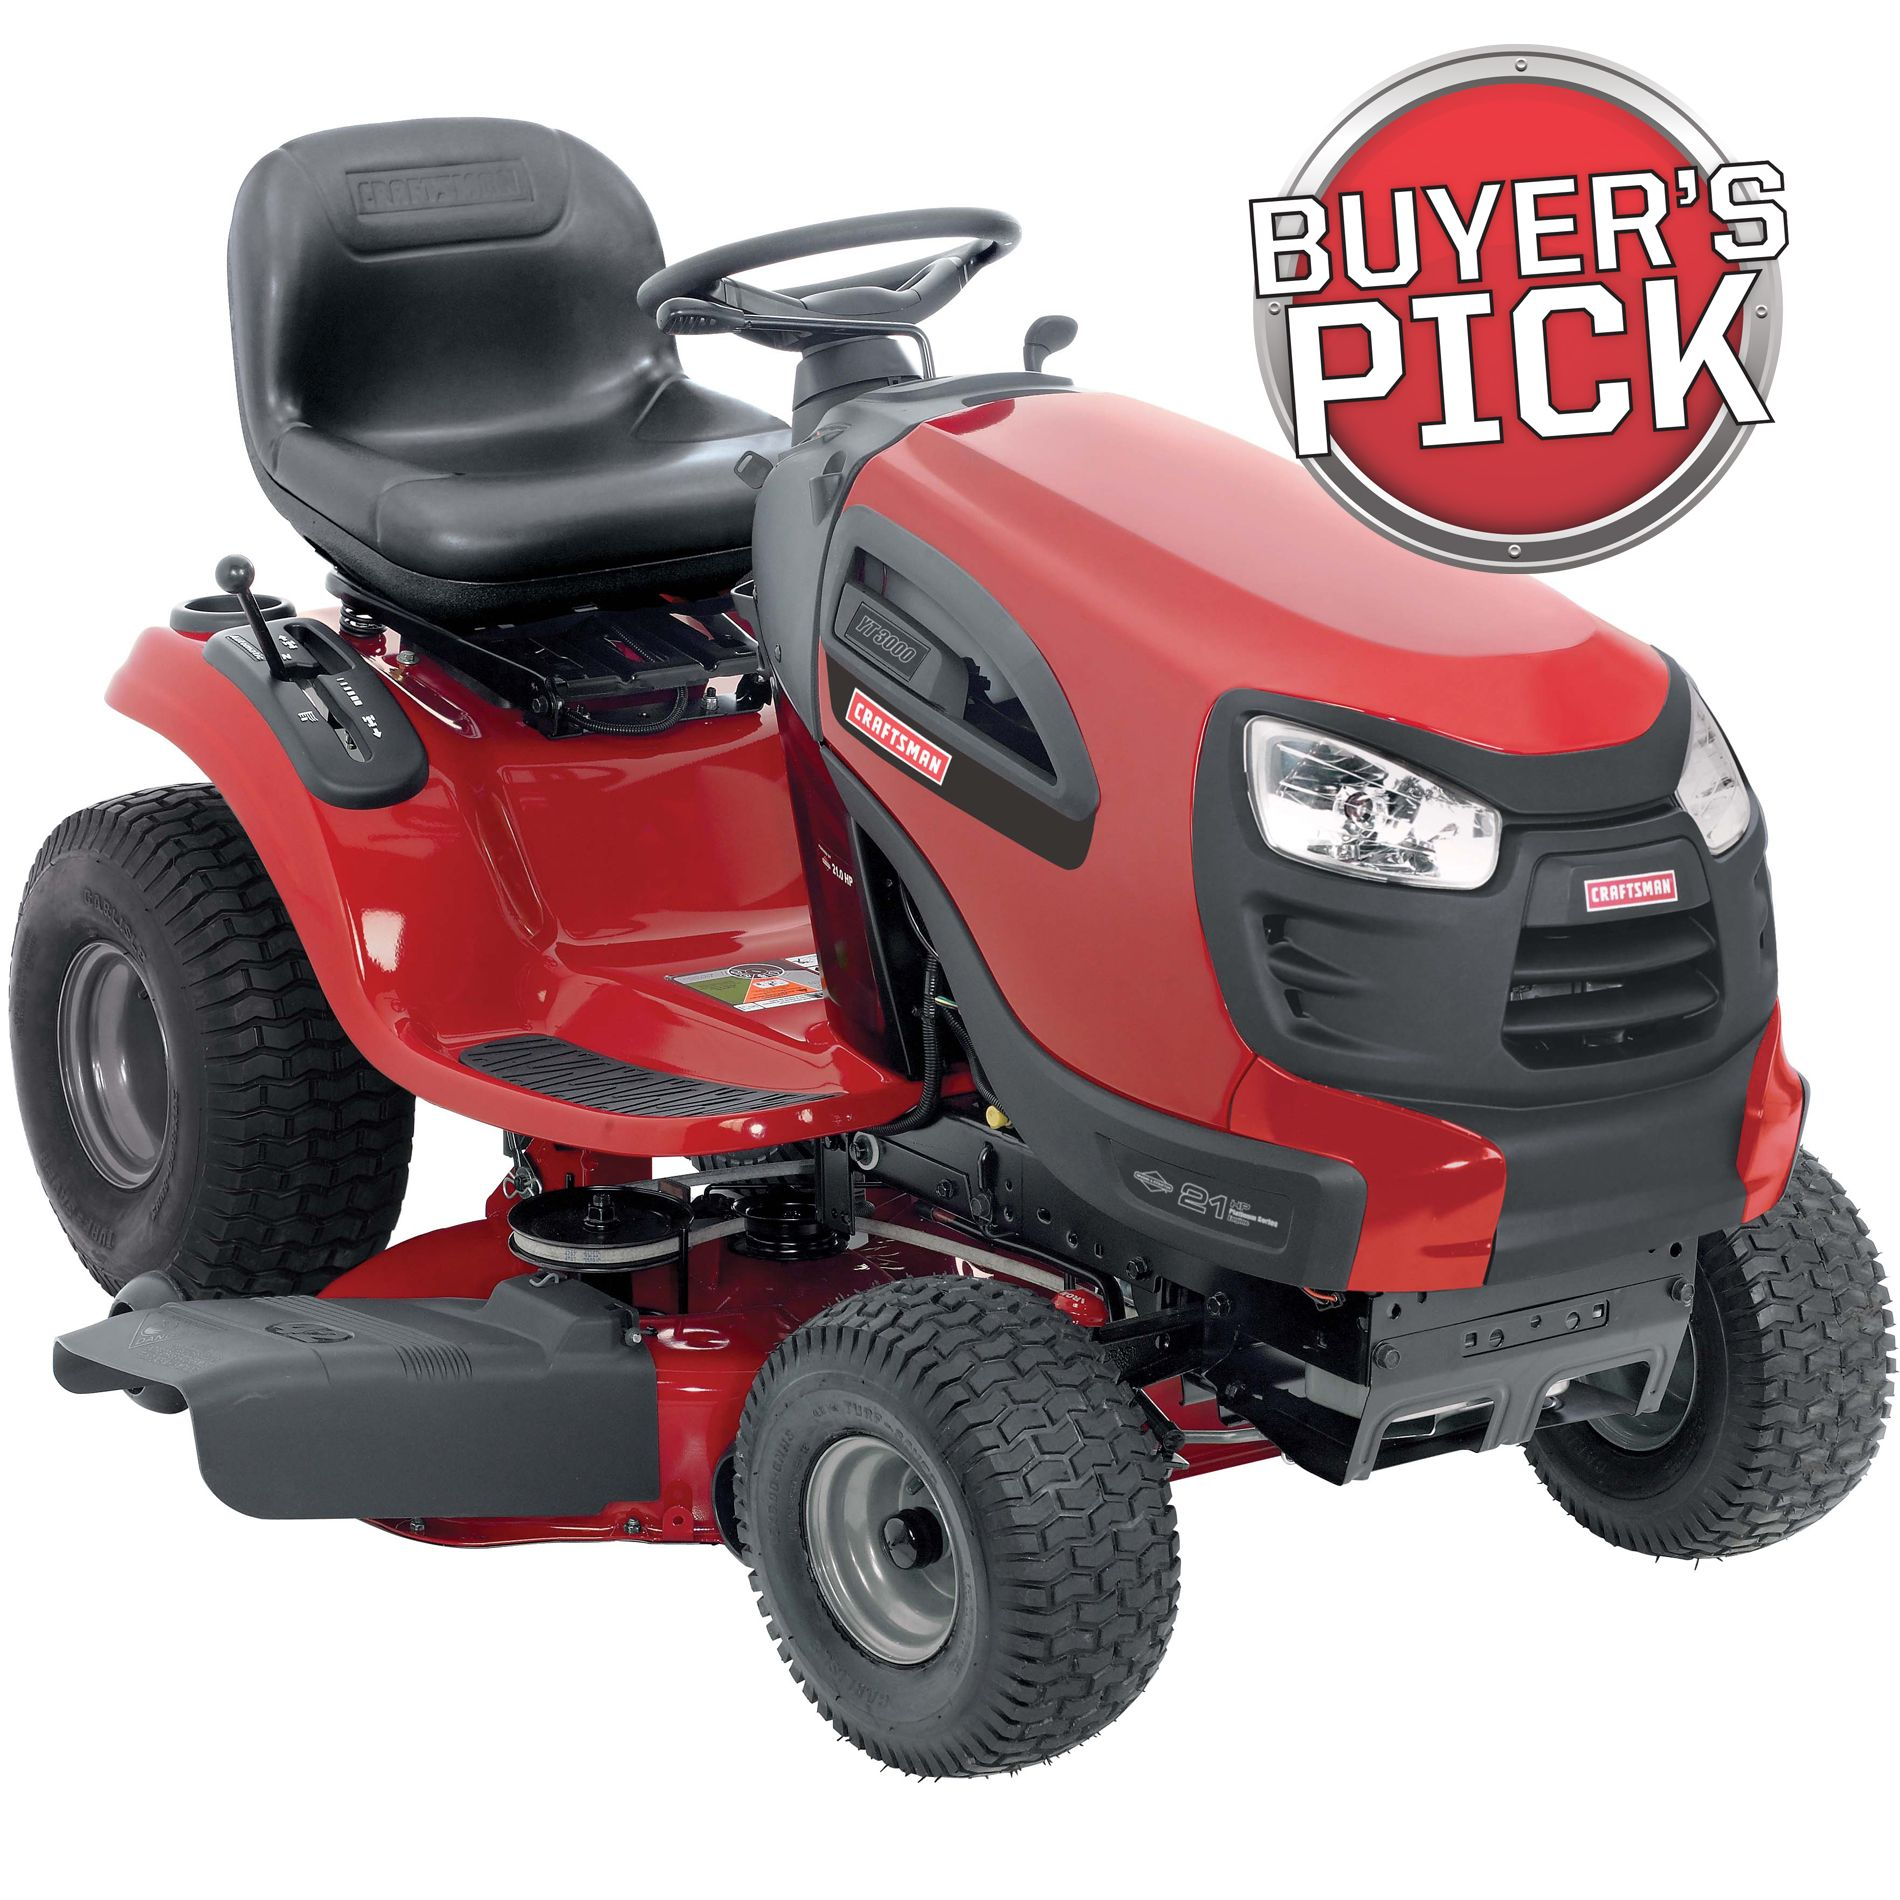 Craftsman 42 In. 21Hp Briggs & Stratton Hydrostatic Turn Tight Yard Tractor Non CA